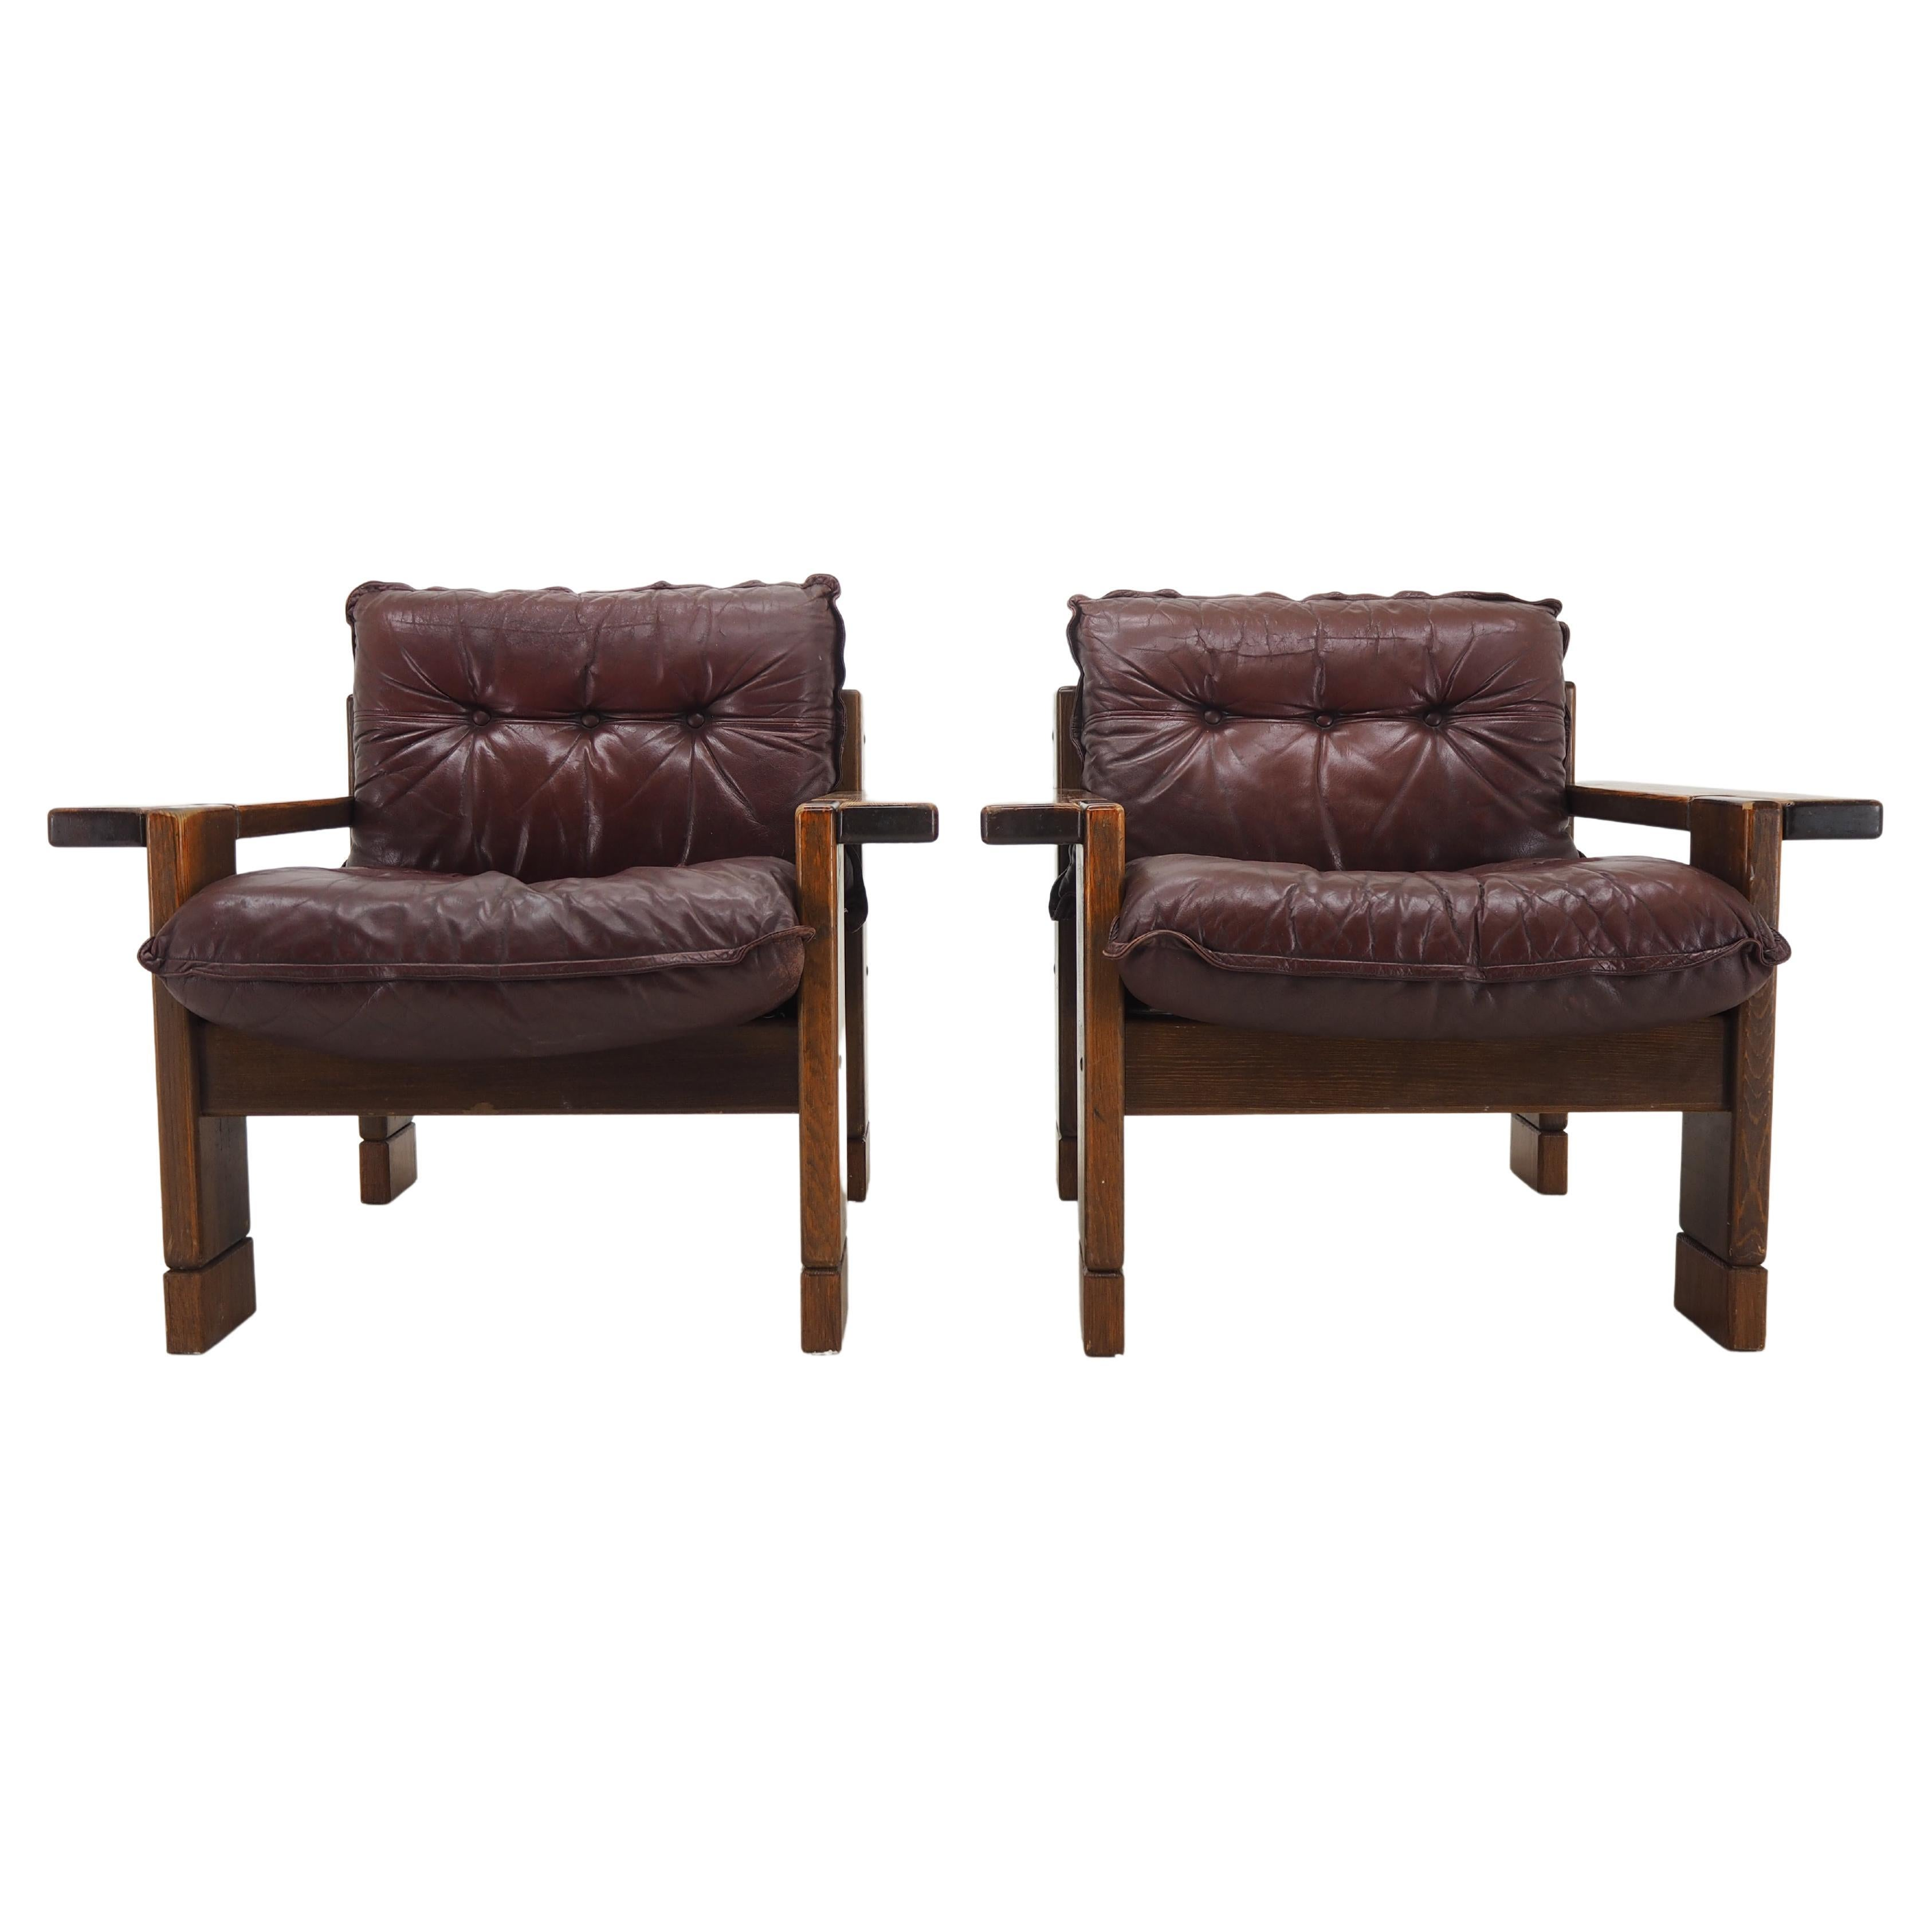 Pair of Midcentury Leather Armchairs, 1960s